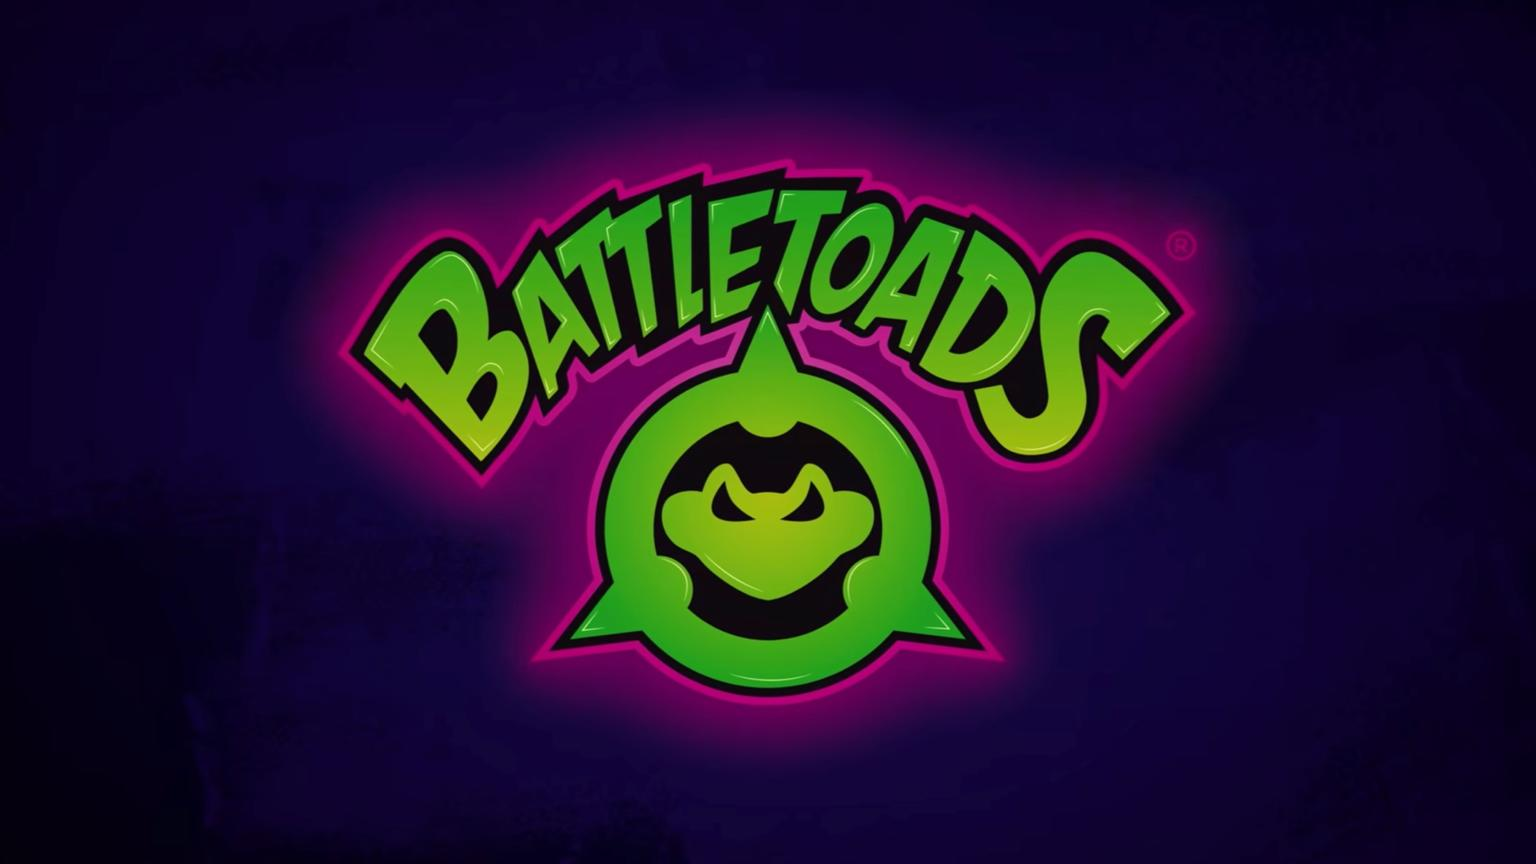 unity enterprise battletoads